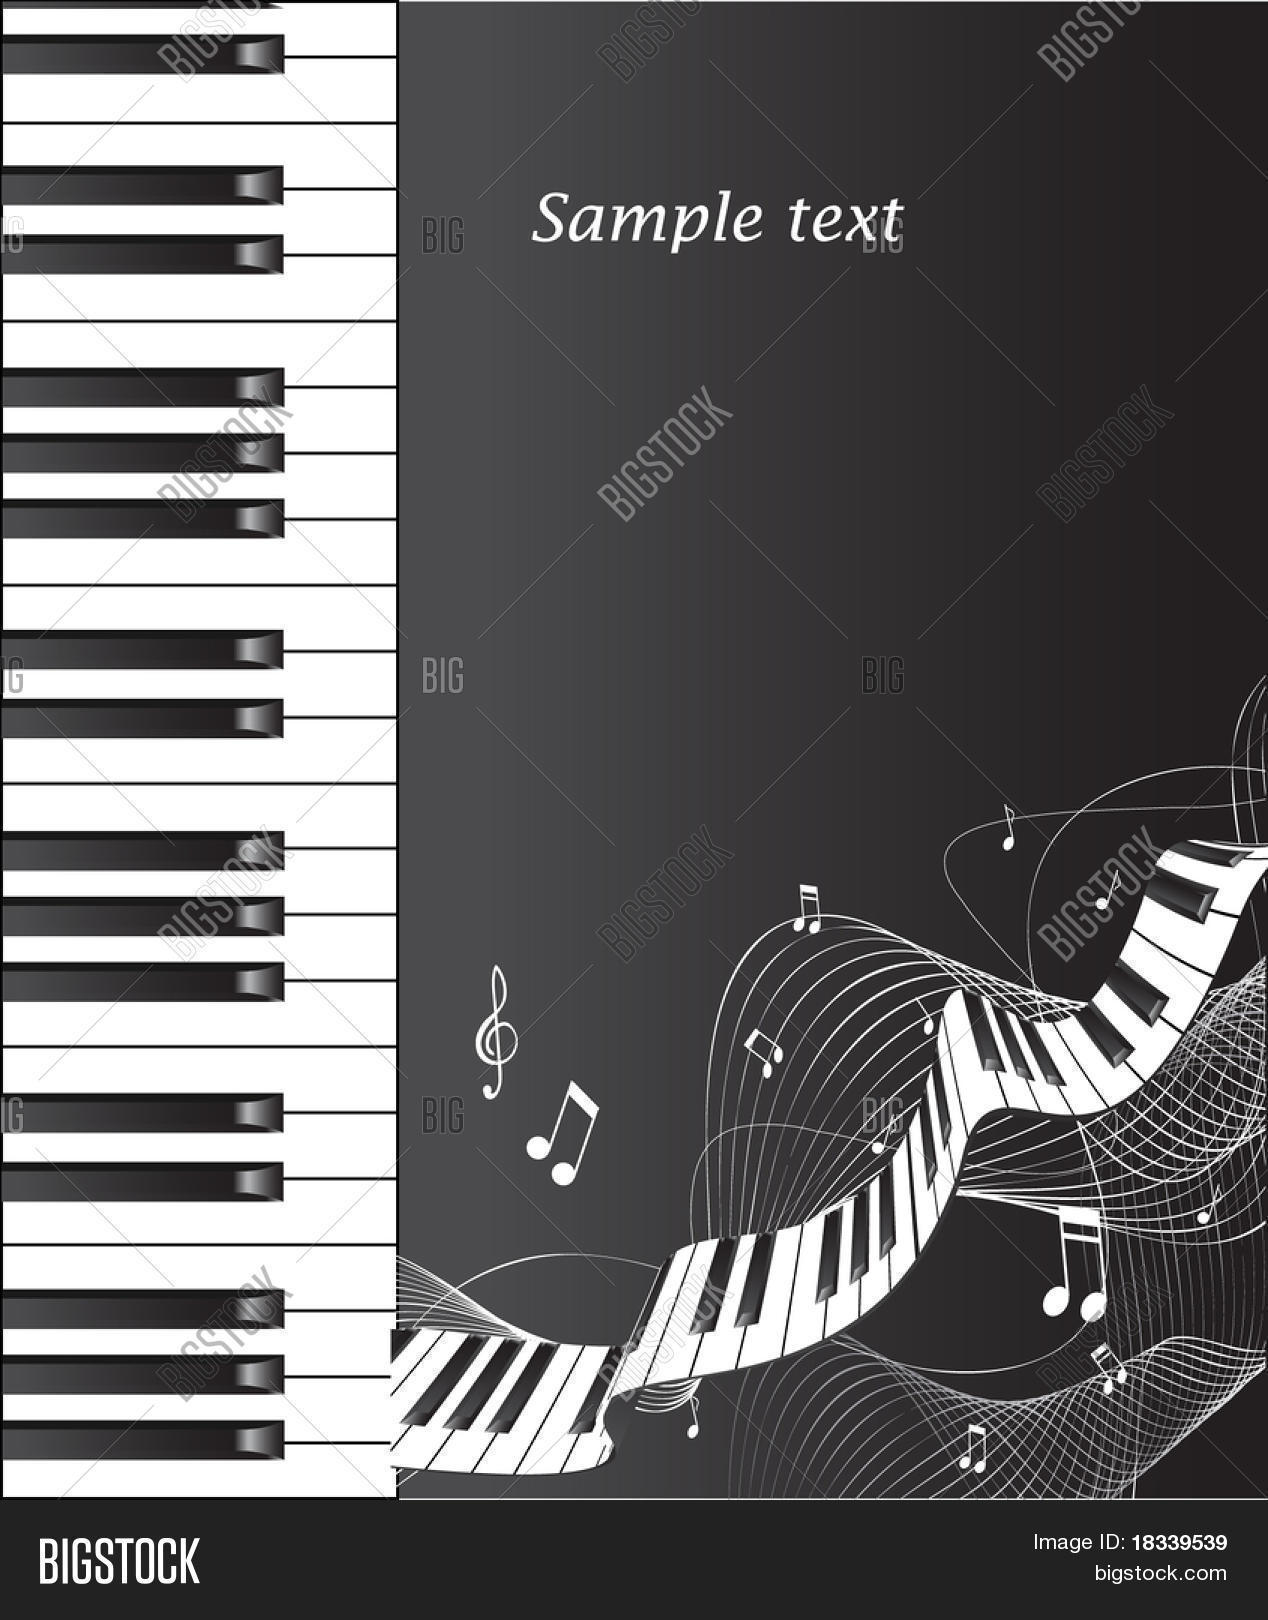 Abstract Piano Background 10 Eps Vector